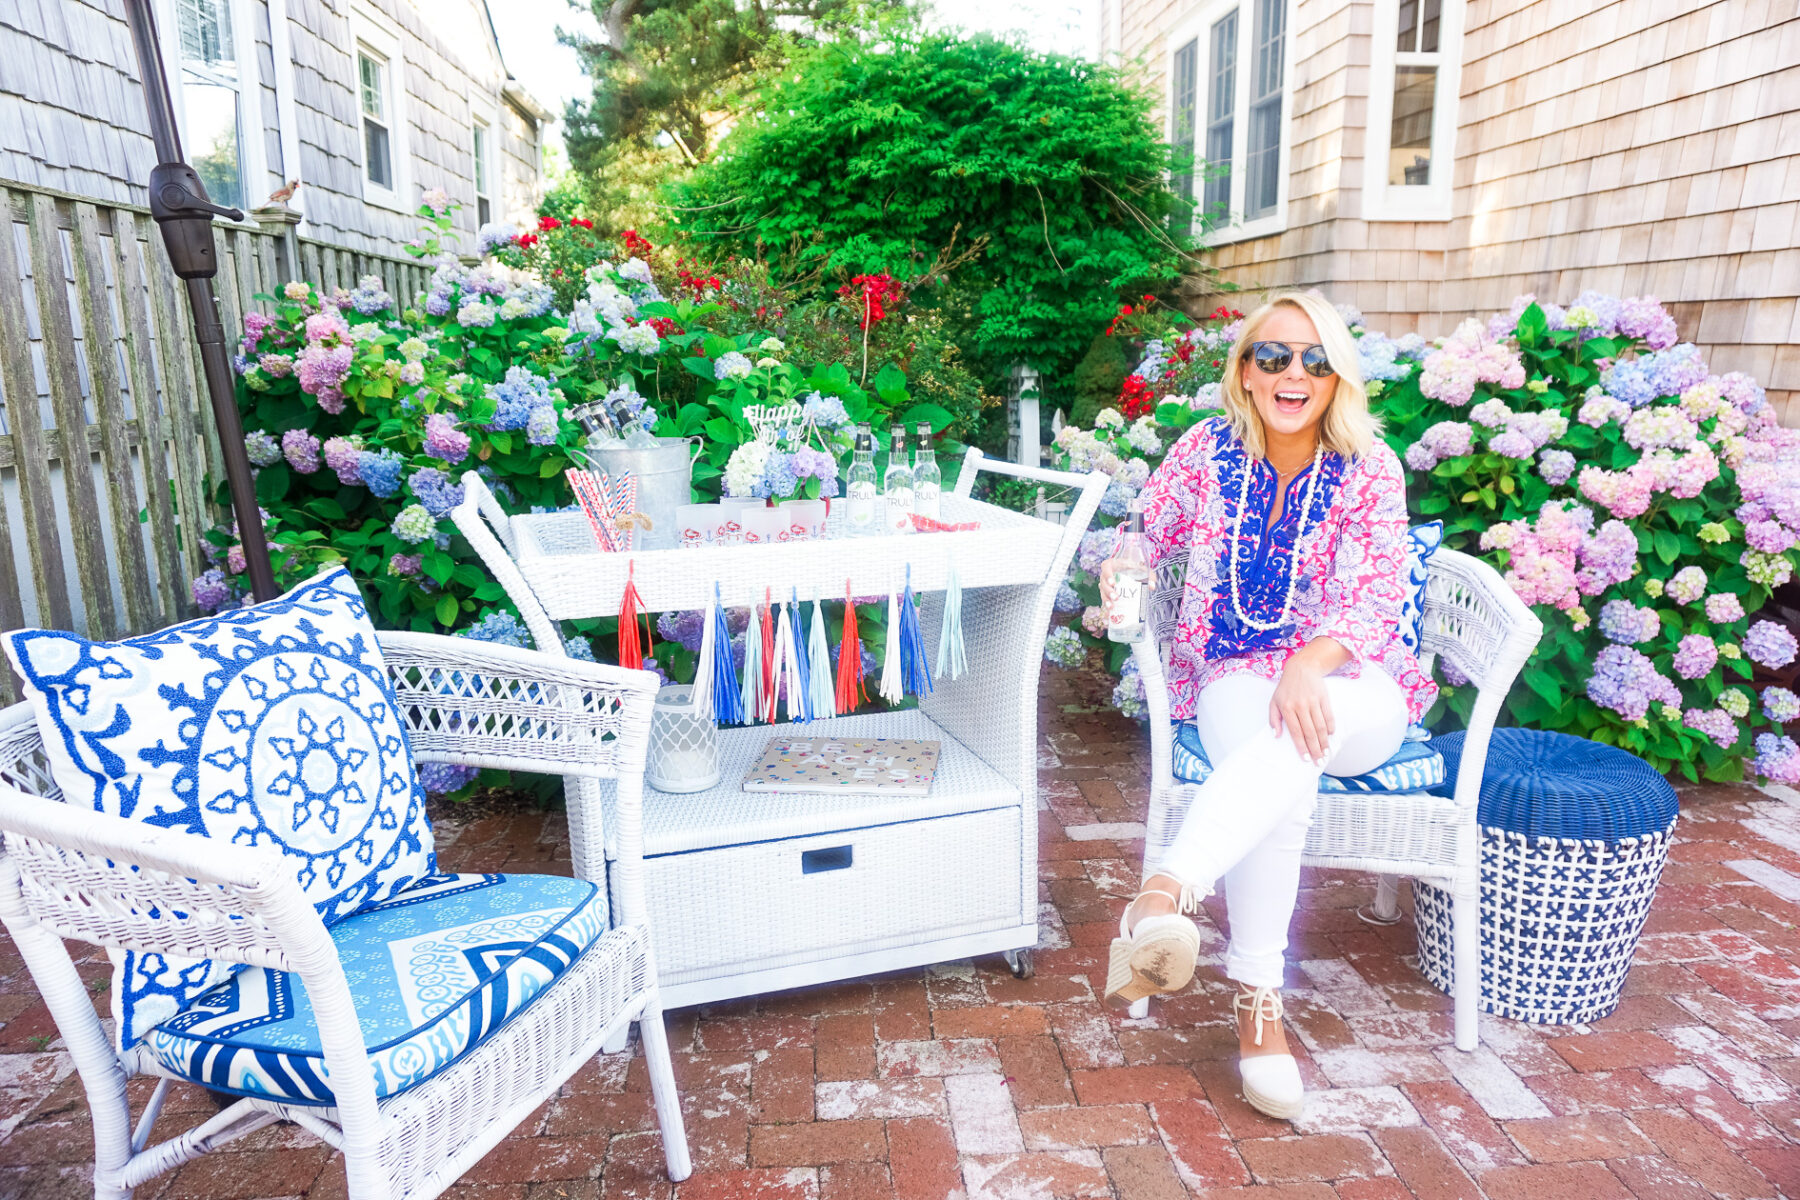 4th of July party on the patio with a summer patriotic bar cart